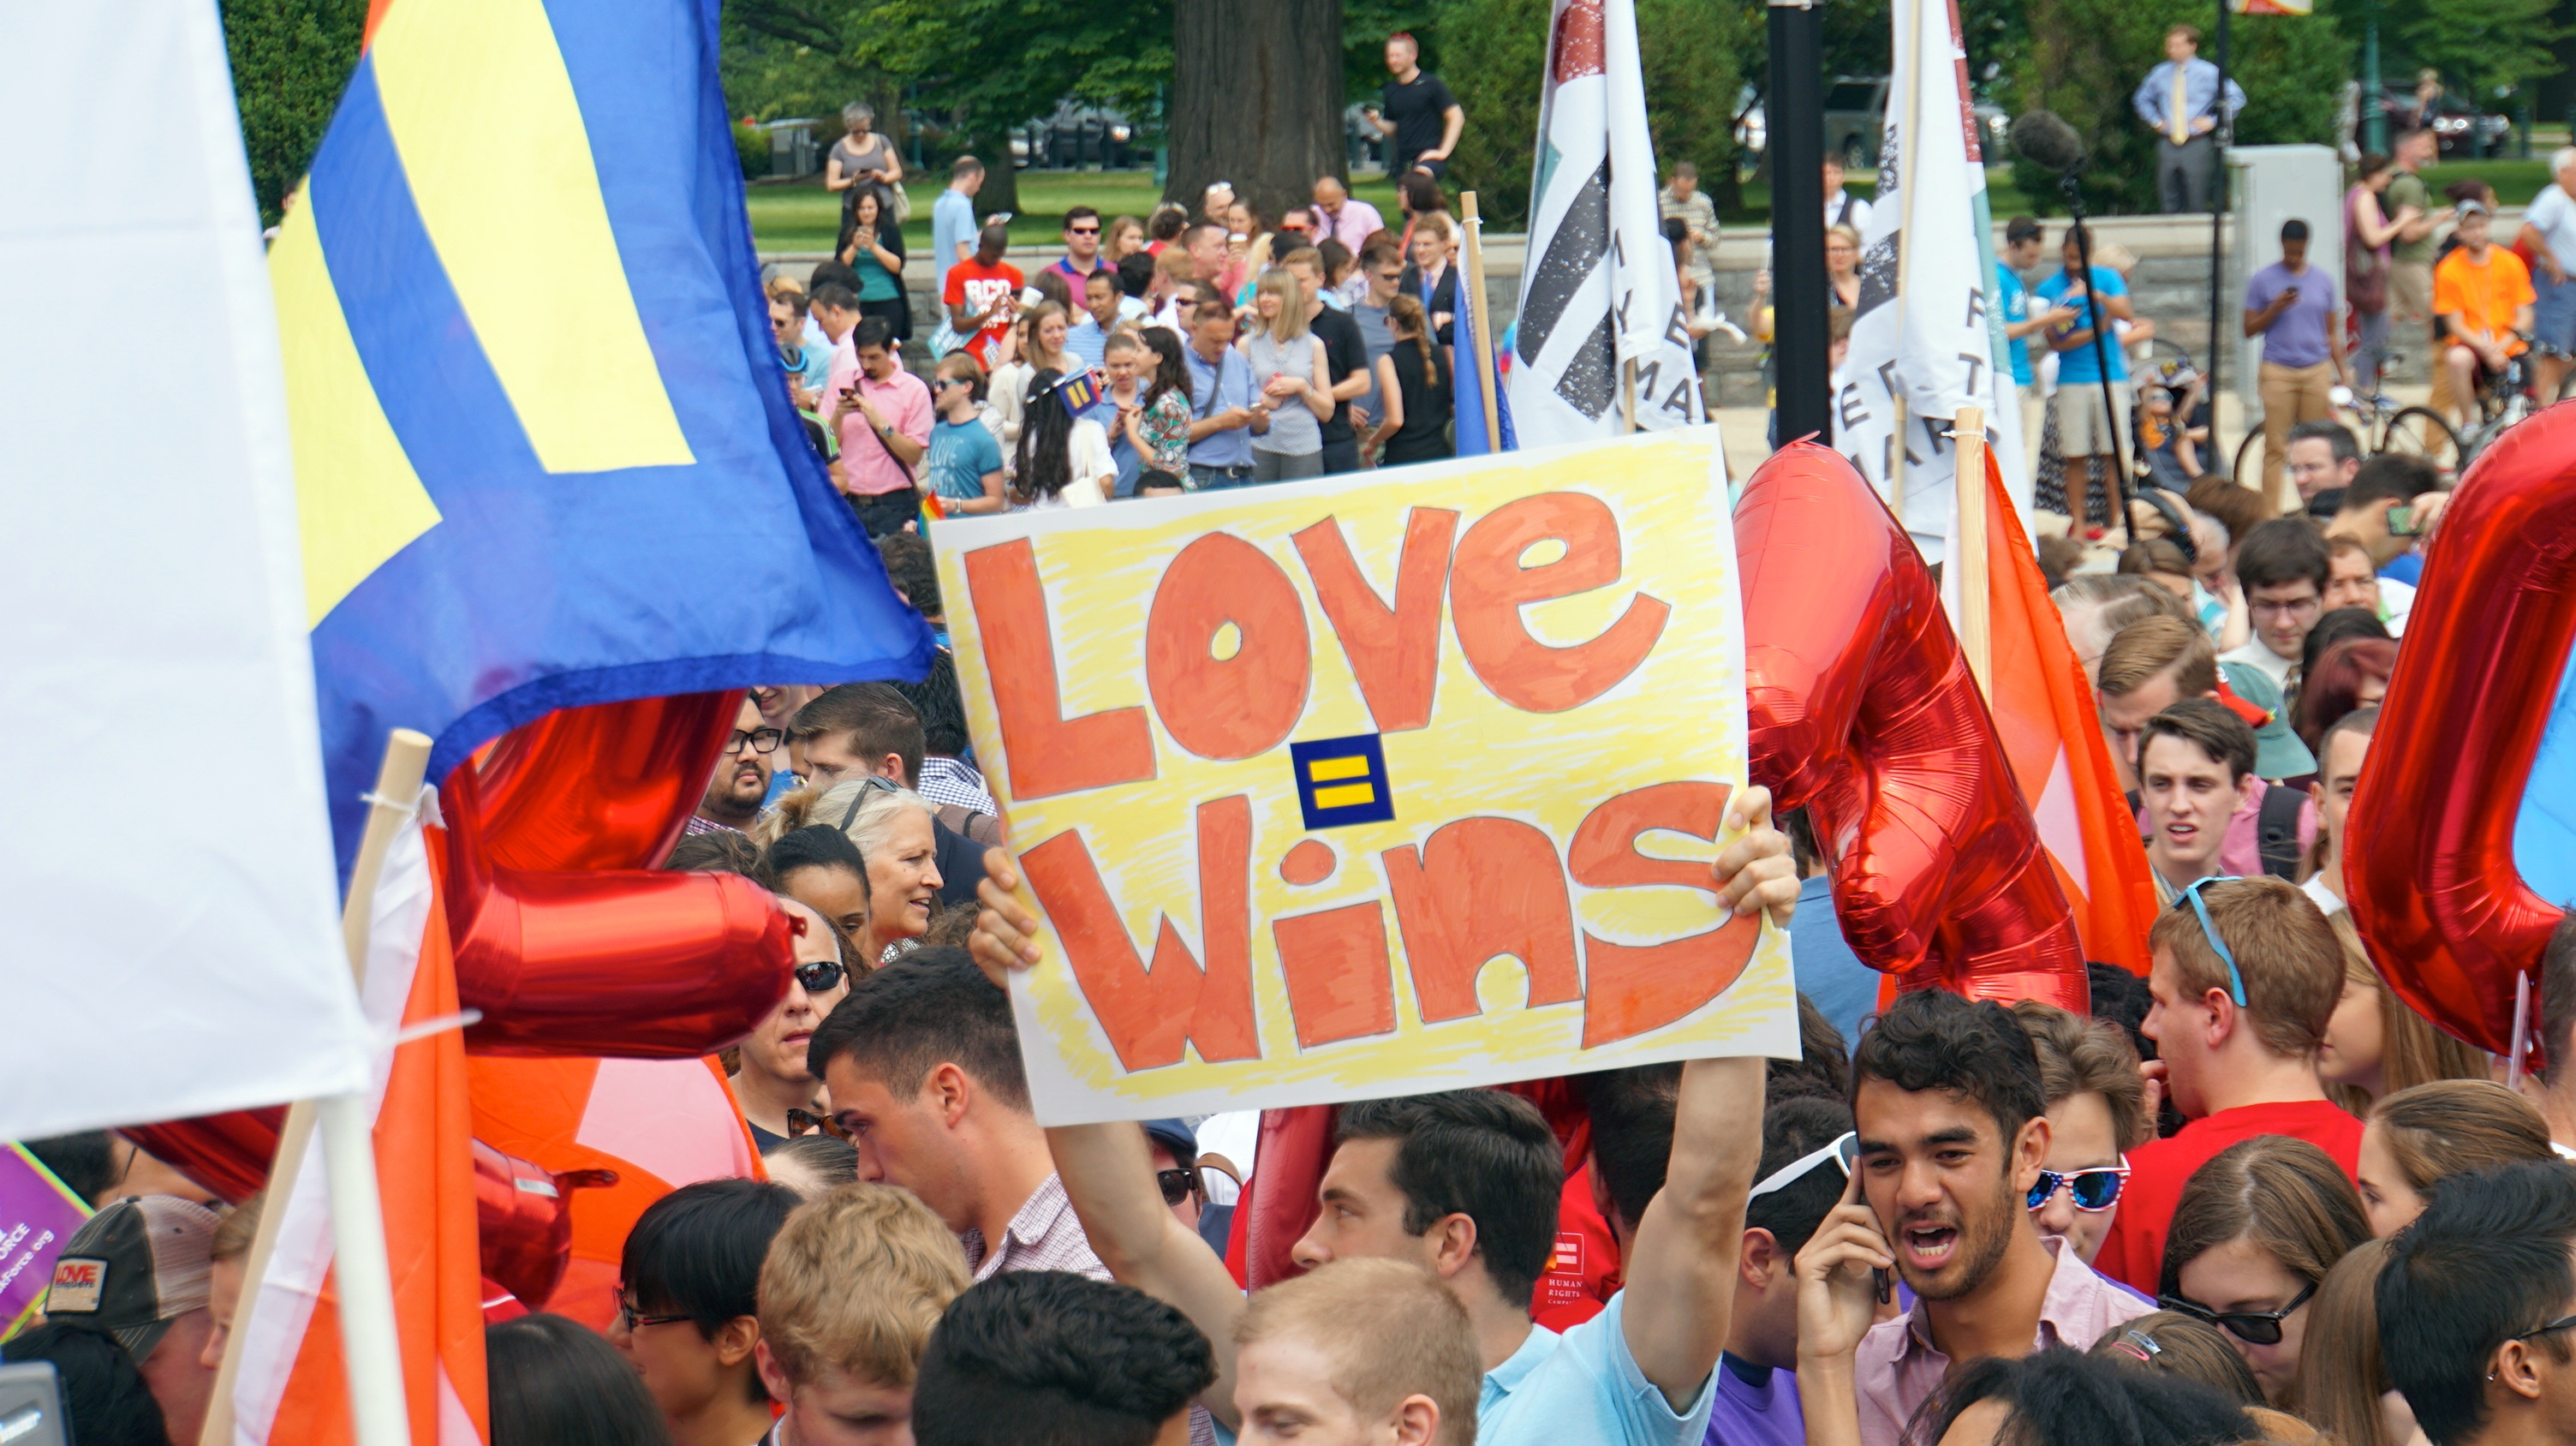 SCOTUS Marriage Equality 2015 58130 (19014845839).jpg